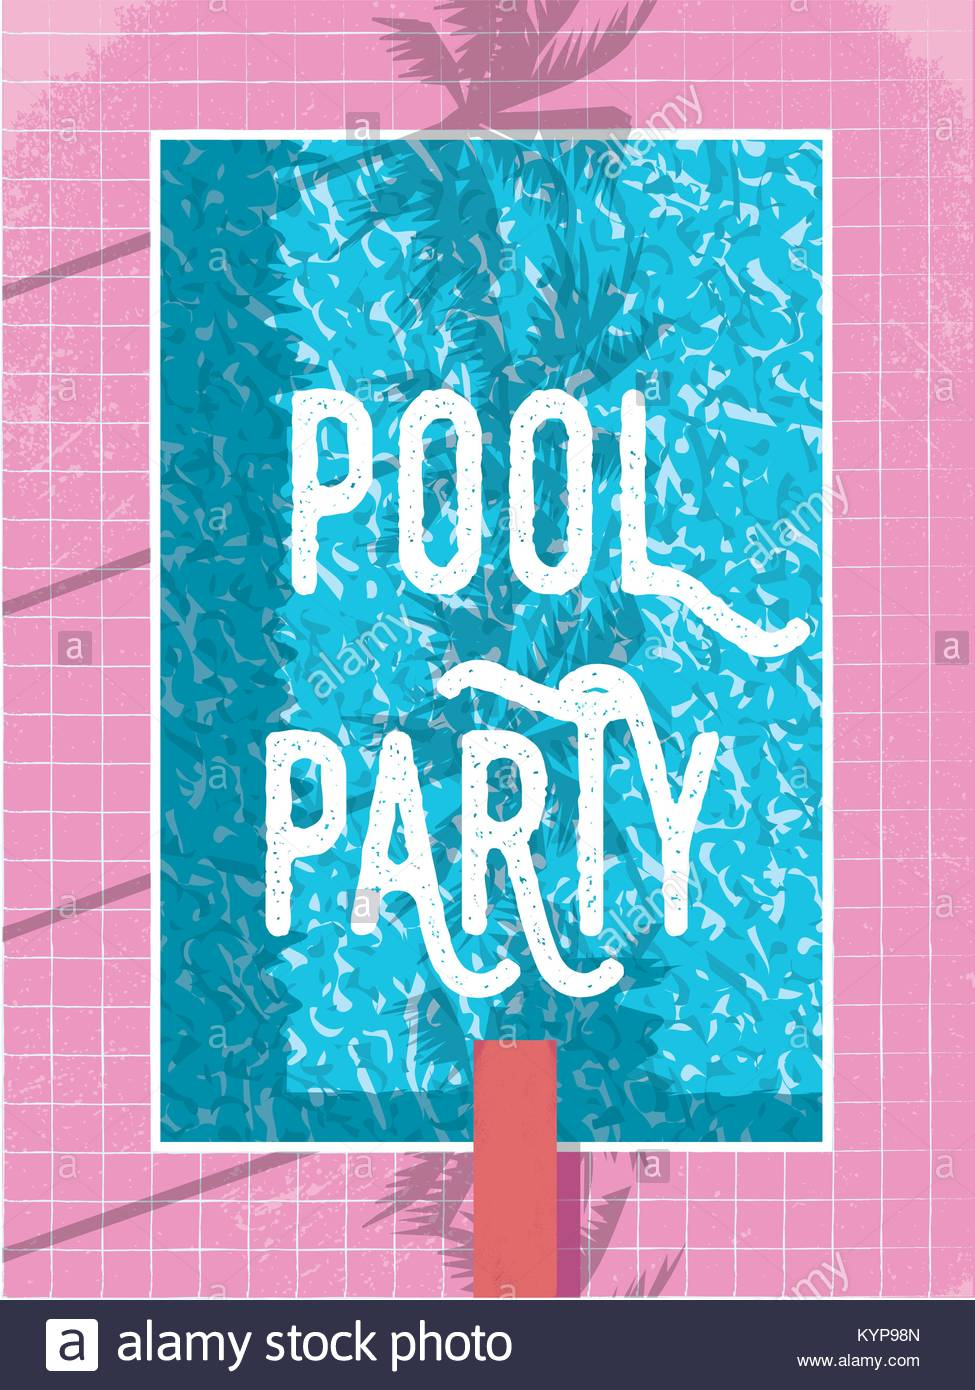 Summer pool party invitation or poster template with vintage retro ...